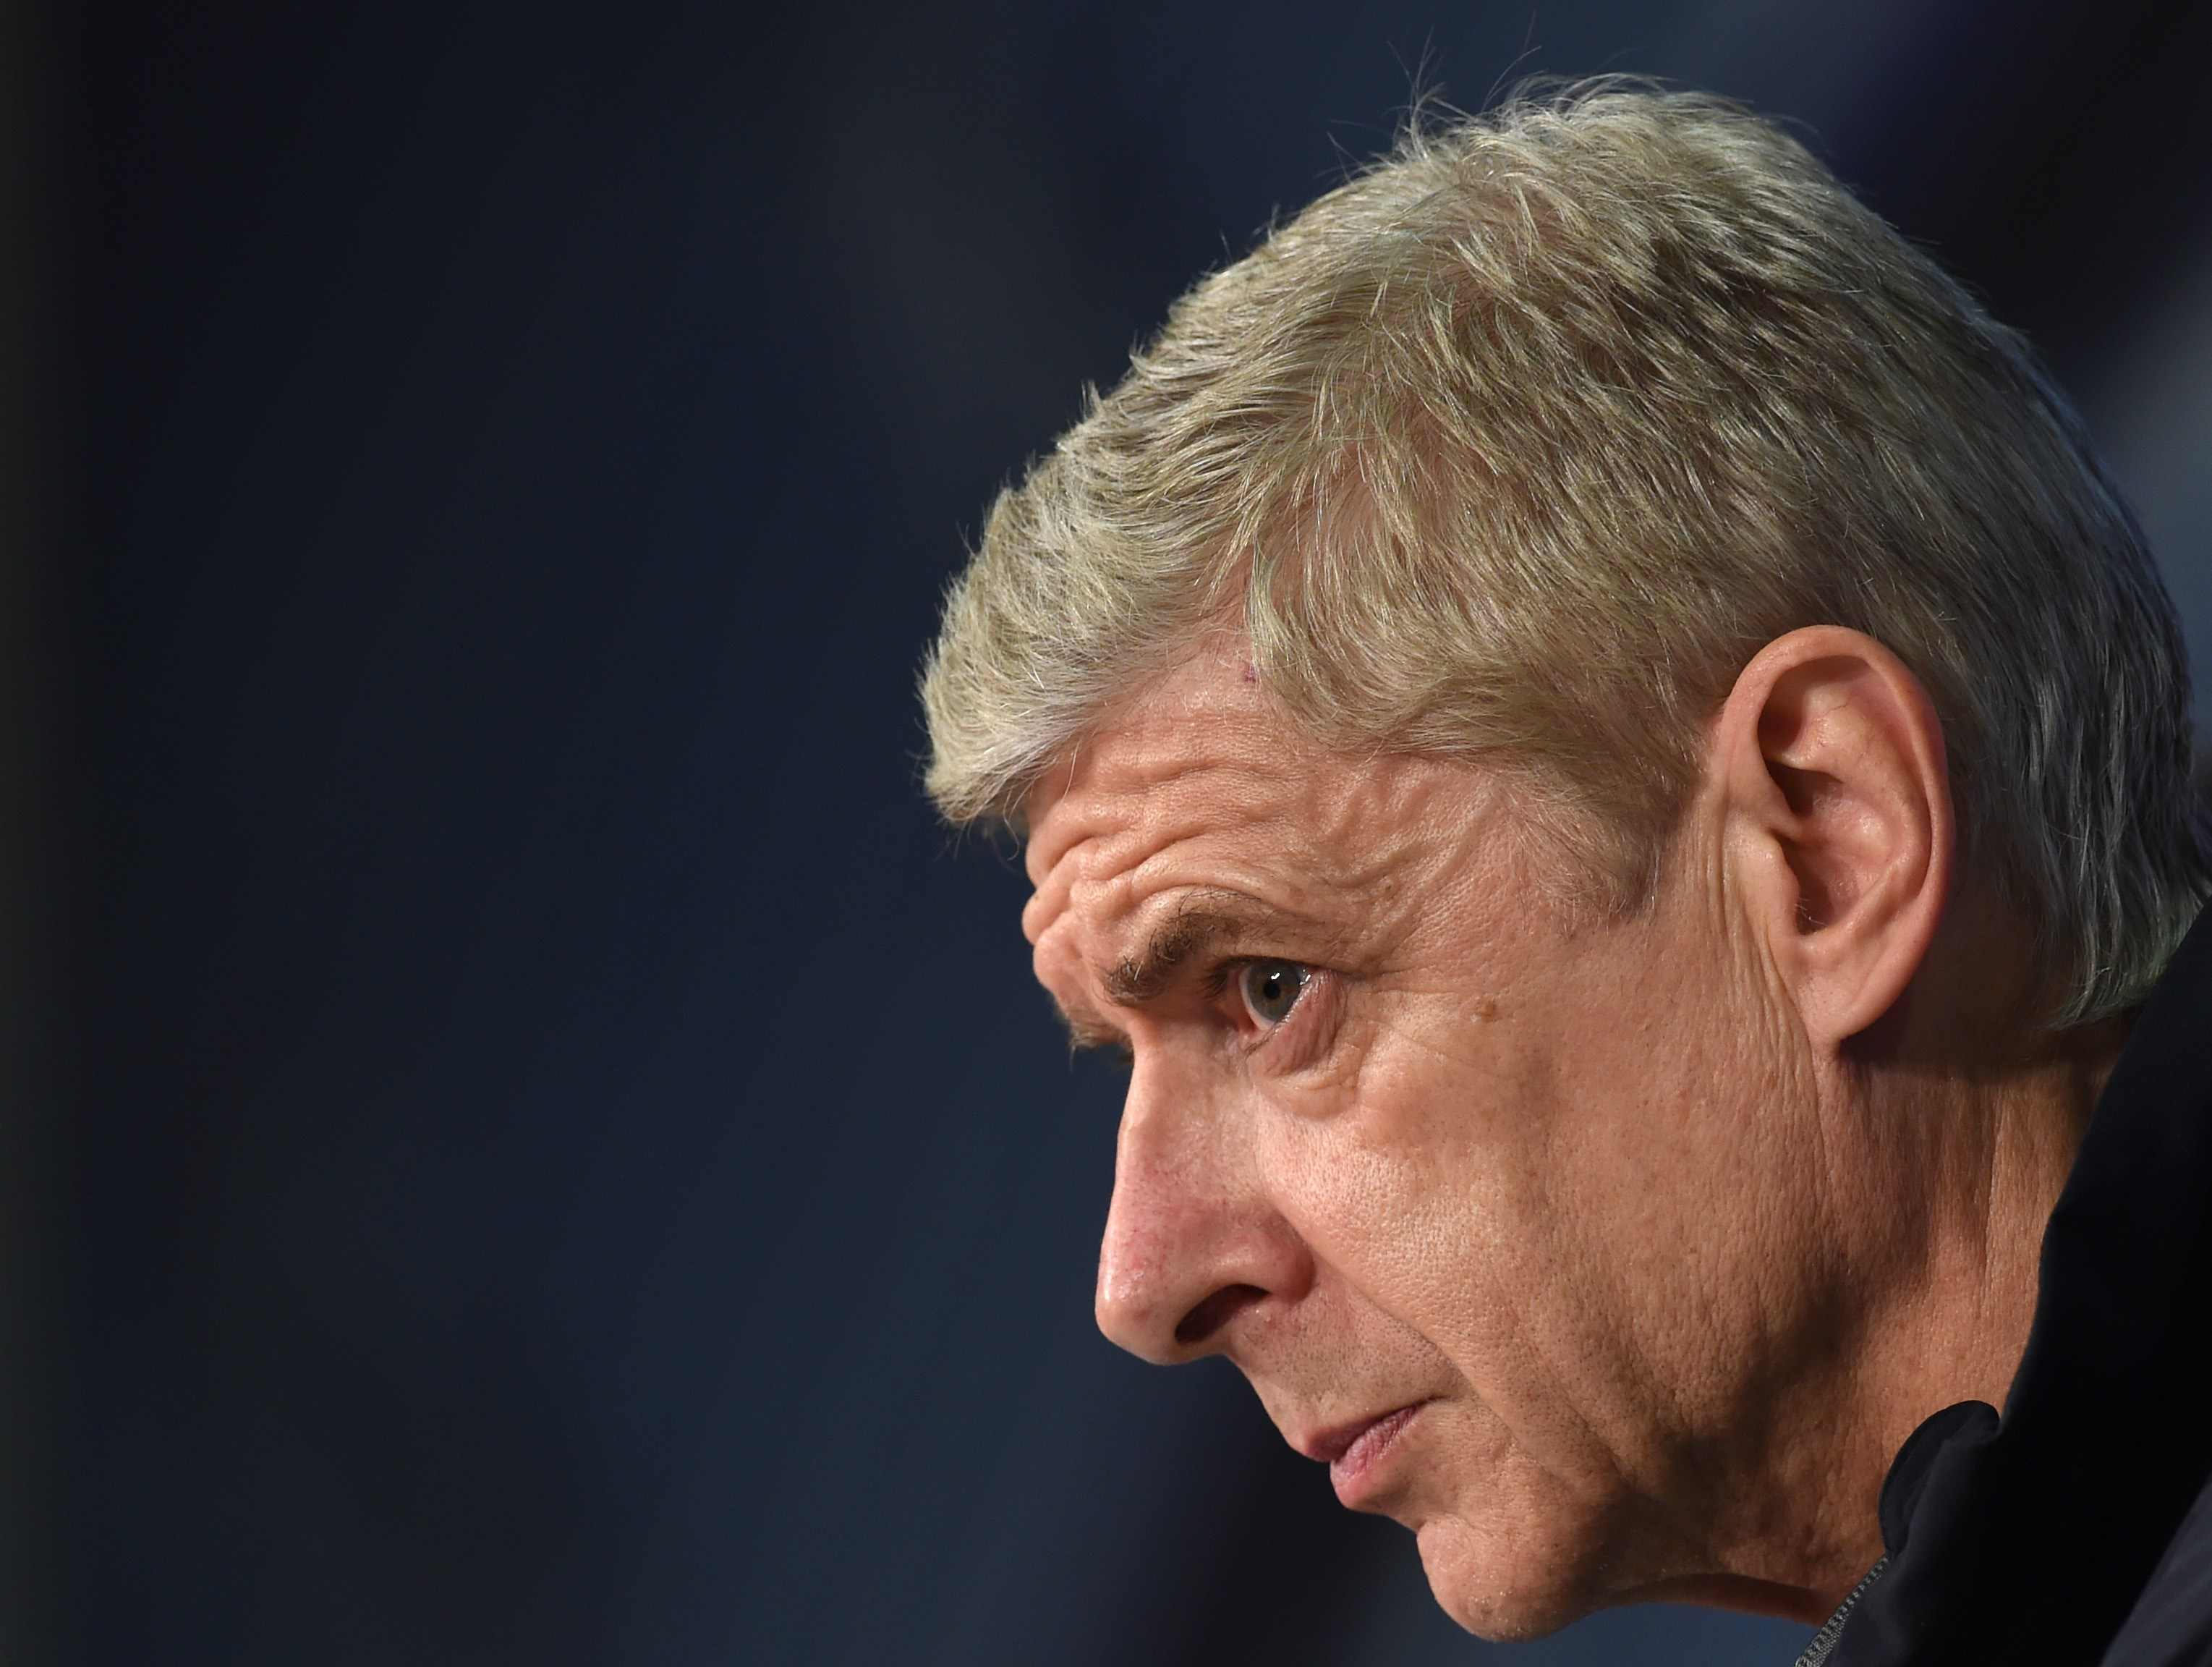 Arsene Wenger has dealt with numerous injuries to his side this season. (Getty)